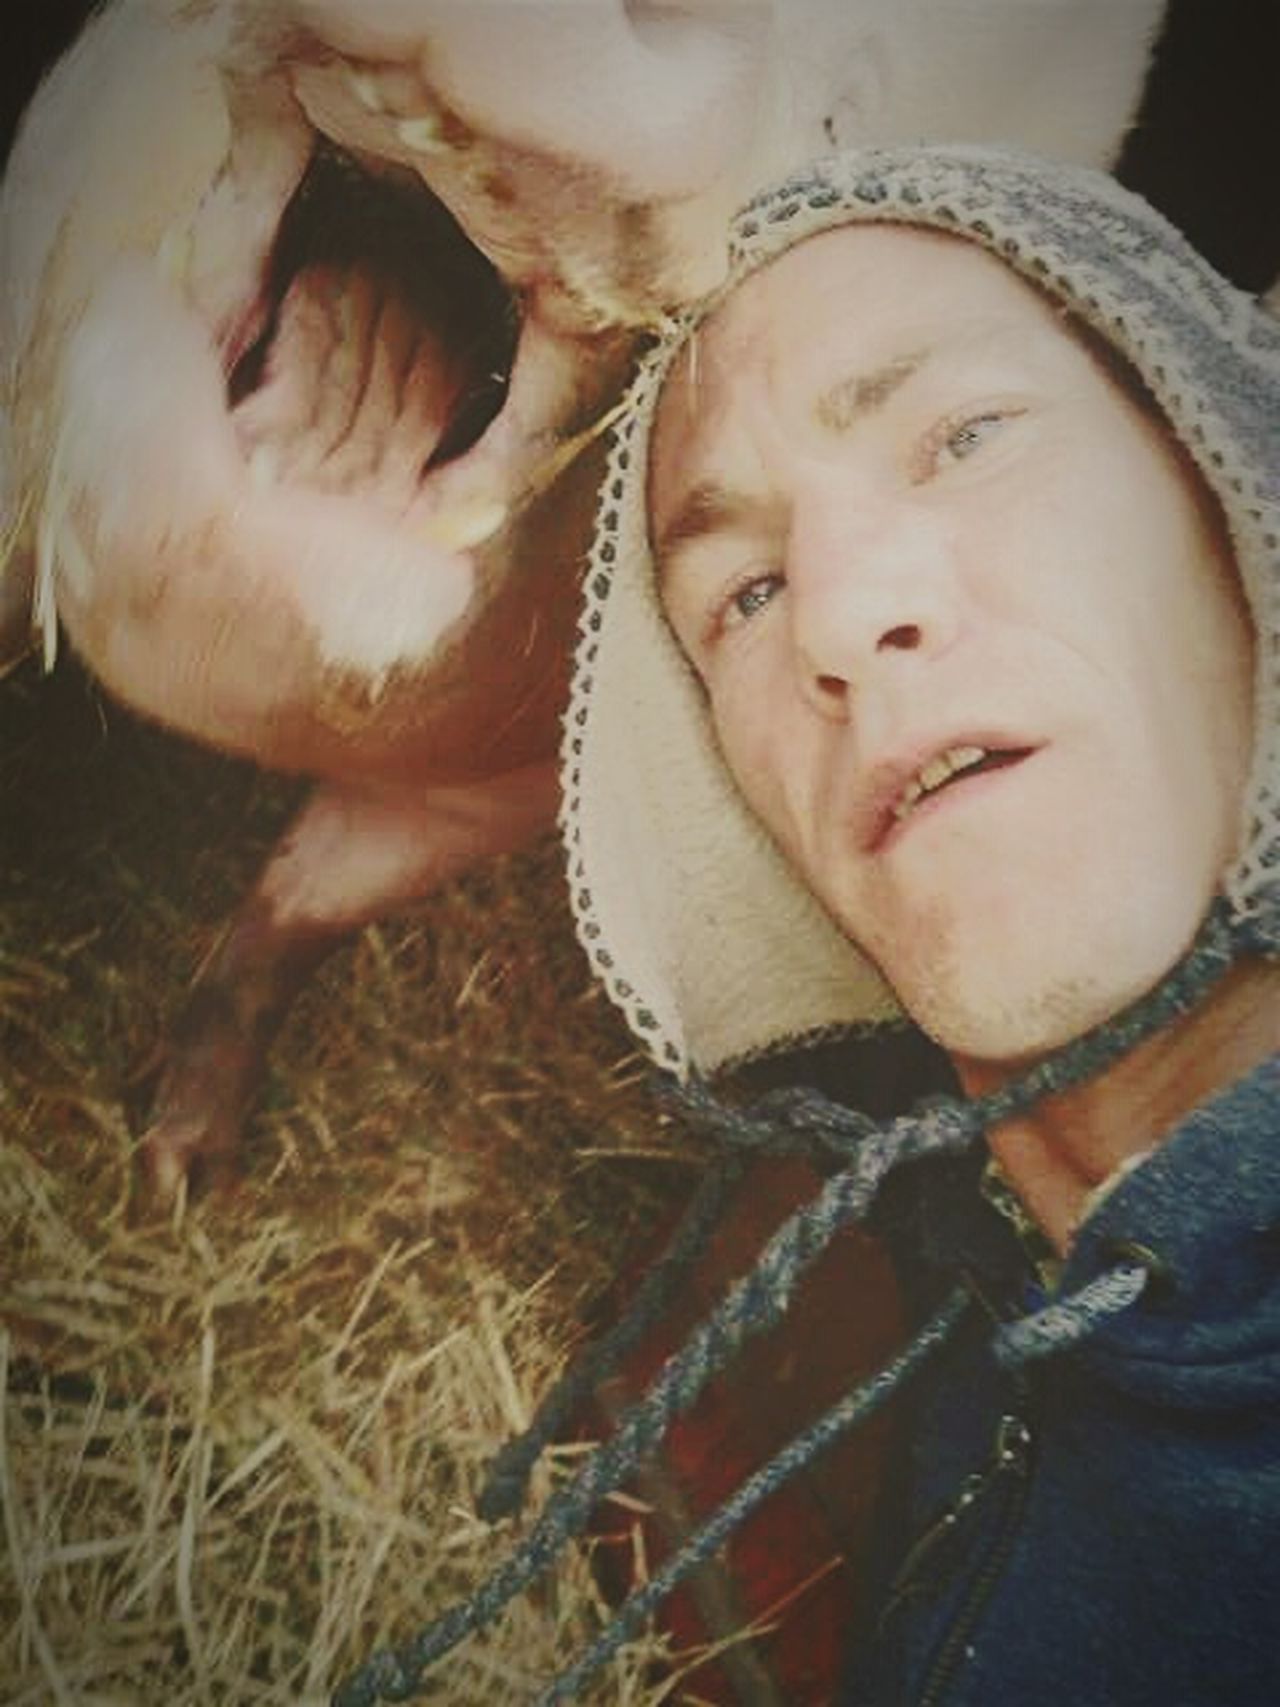 Pig Bestfriend Percypigs me mate percy when I took selfie he gave biggest smile ever lol x That's Me Check This Out Hello World Love Without Boundaries Cheese! Taking Photos Check This Out That's Me